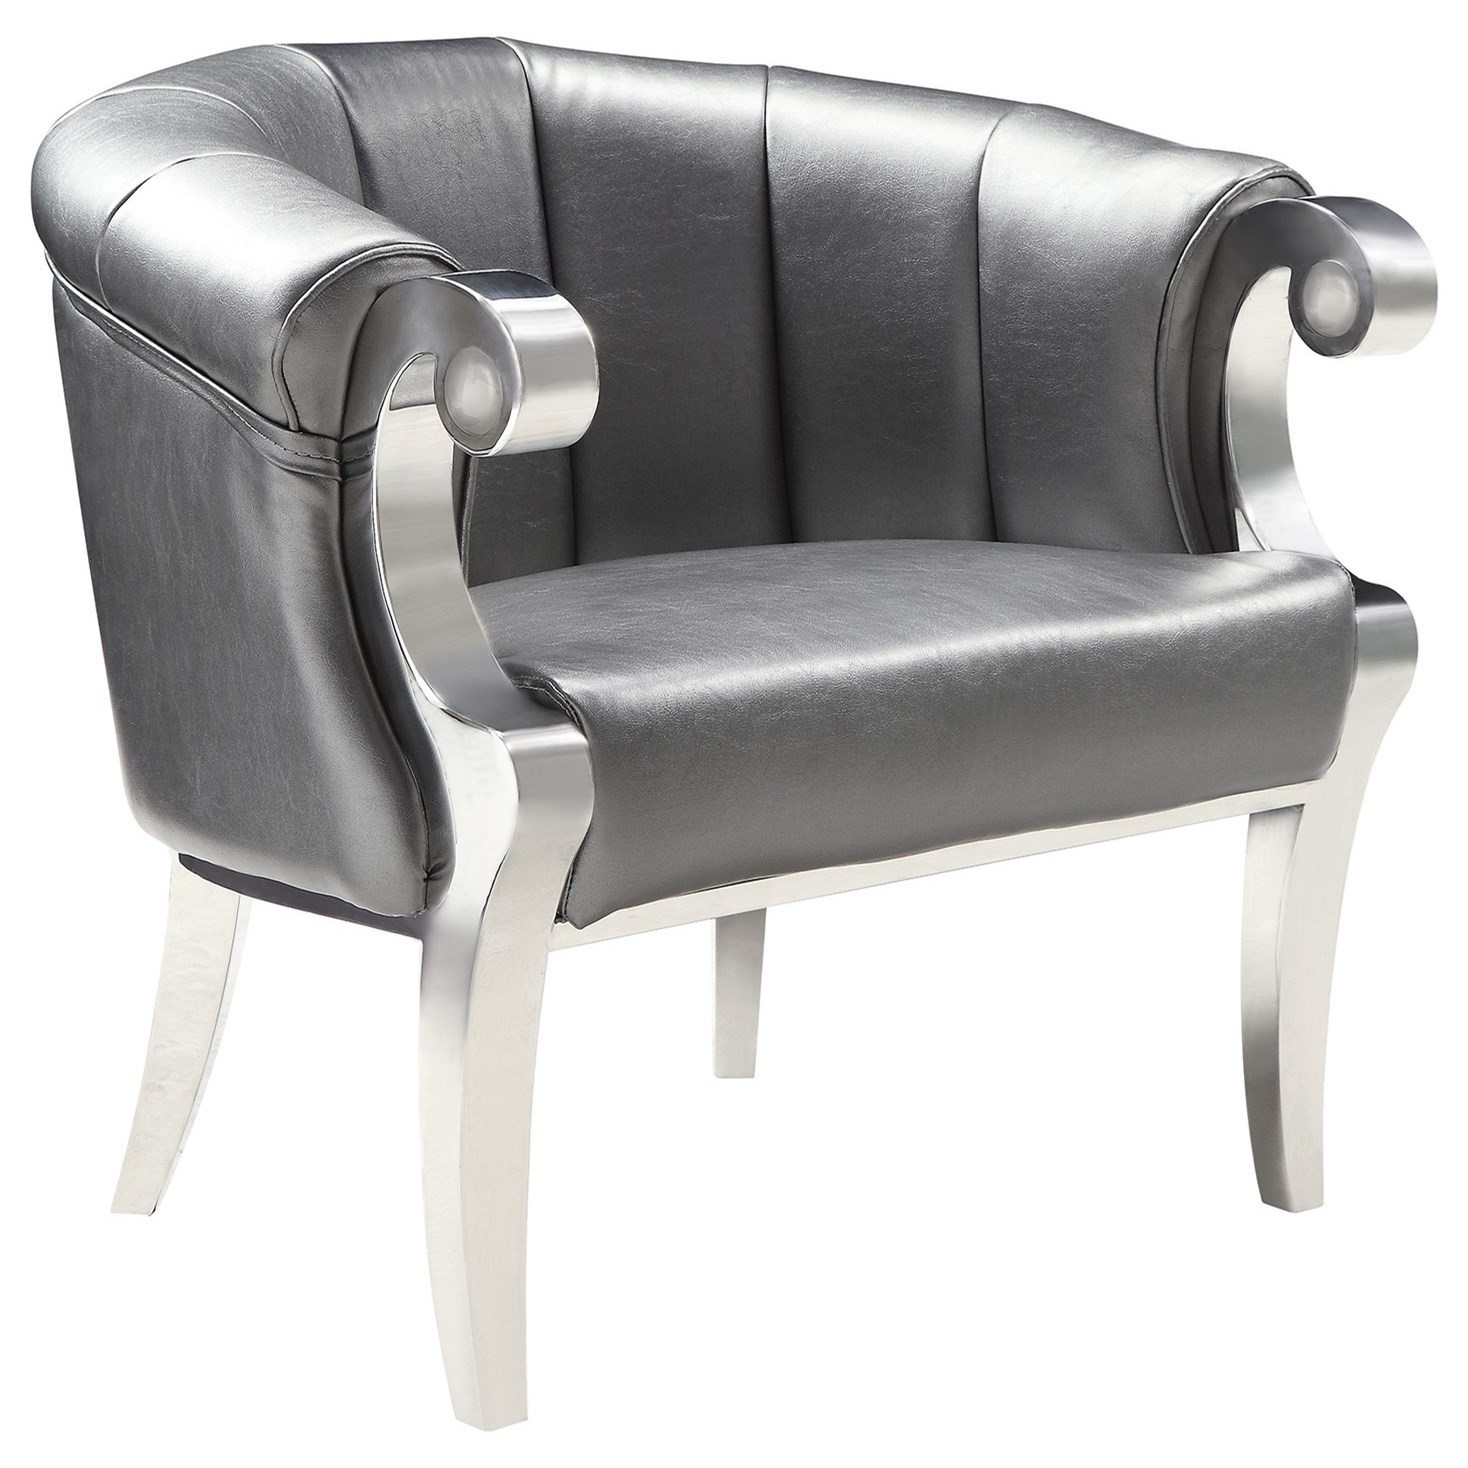 Coaster Accent Chair Accent Seating Glam Accent Chair With Scroll Armrests By Coaster At Value City Furniture